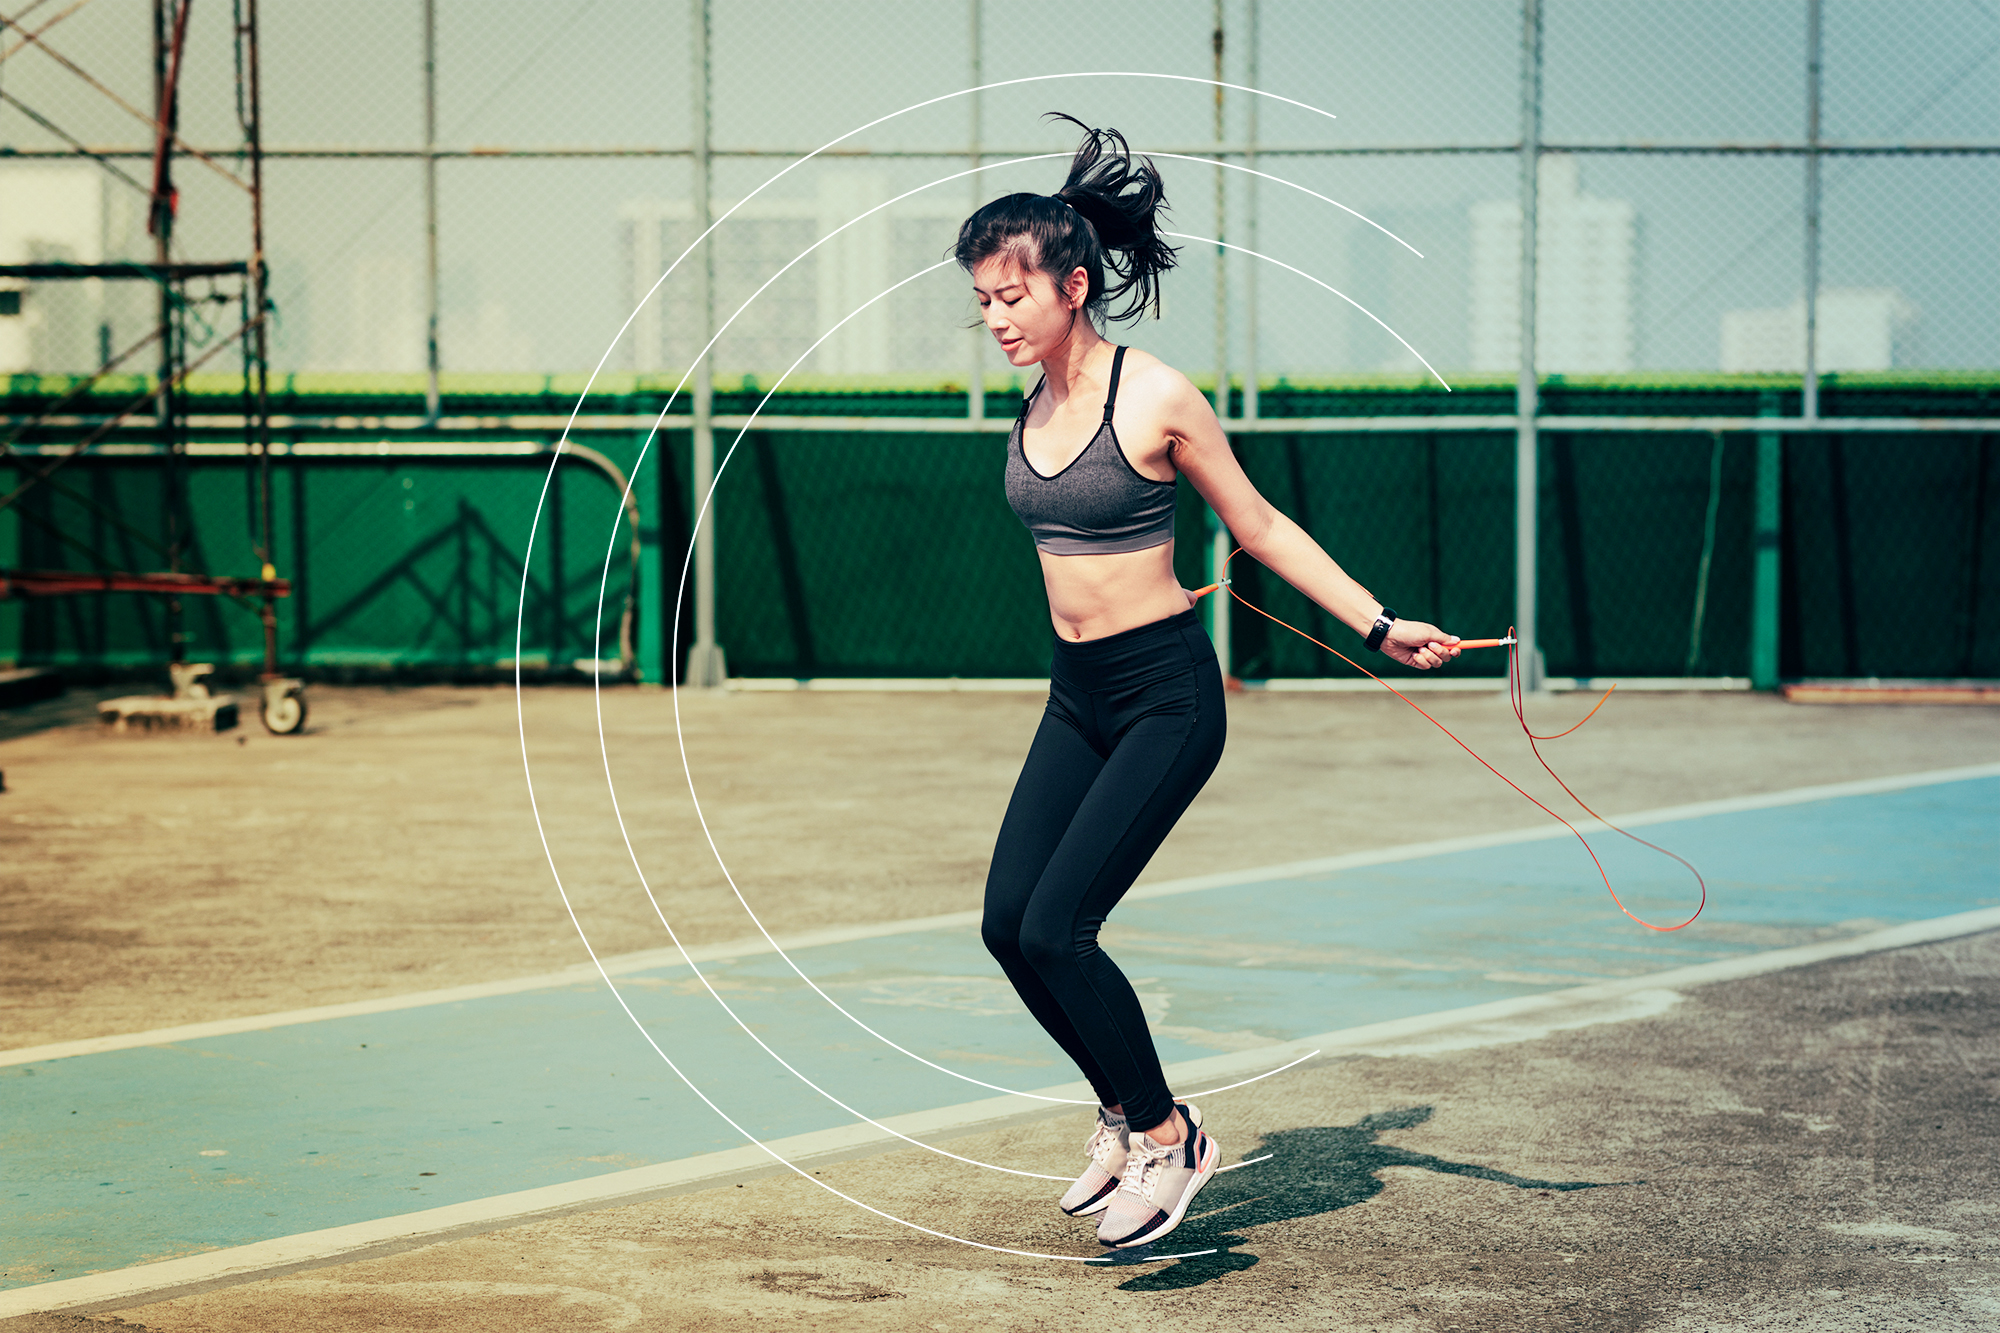 Fit Sportswoman Jumping the Rope Outdoors